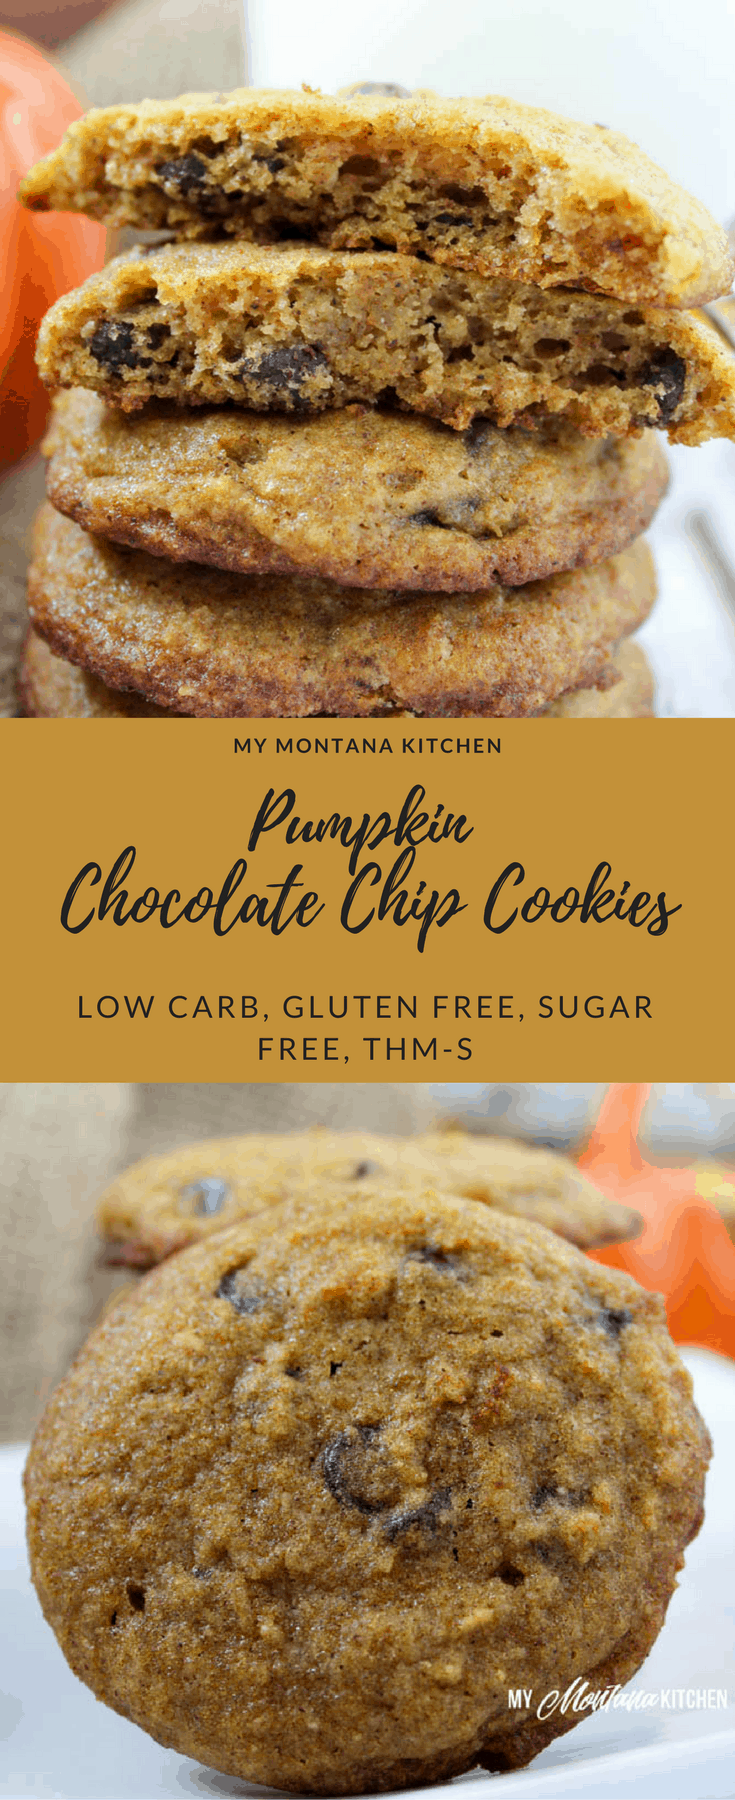 Pumpkin Chocolate Chip Cookies (Low Carb, Sugar Free, Gluten Free, THM-S) #pumpkin #pumpkincookie #chocolatechipcookie #lowcarb #trimhealthymama #thms #sugarfree #healthycookie